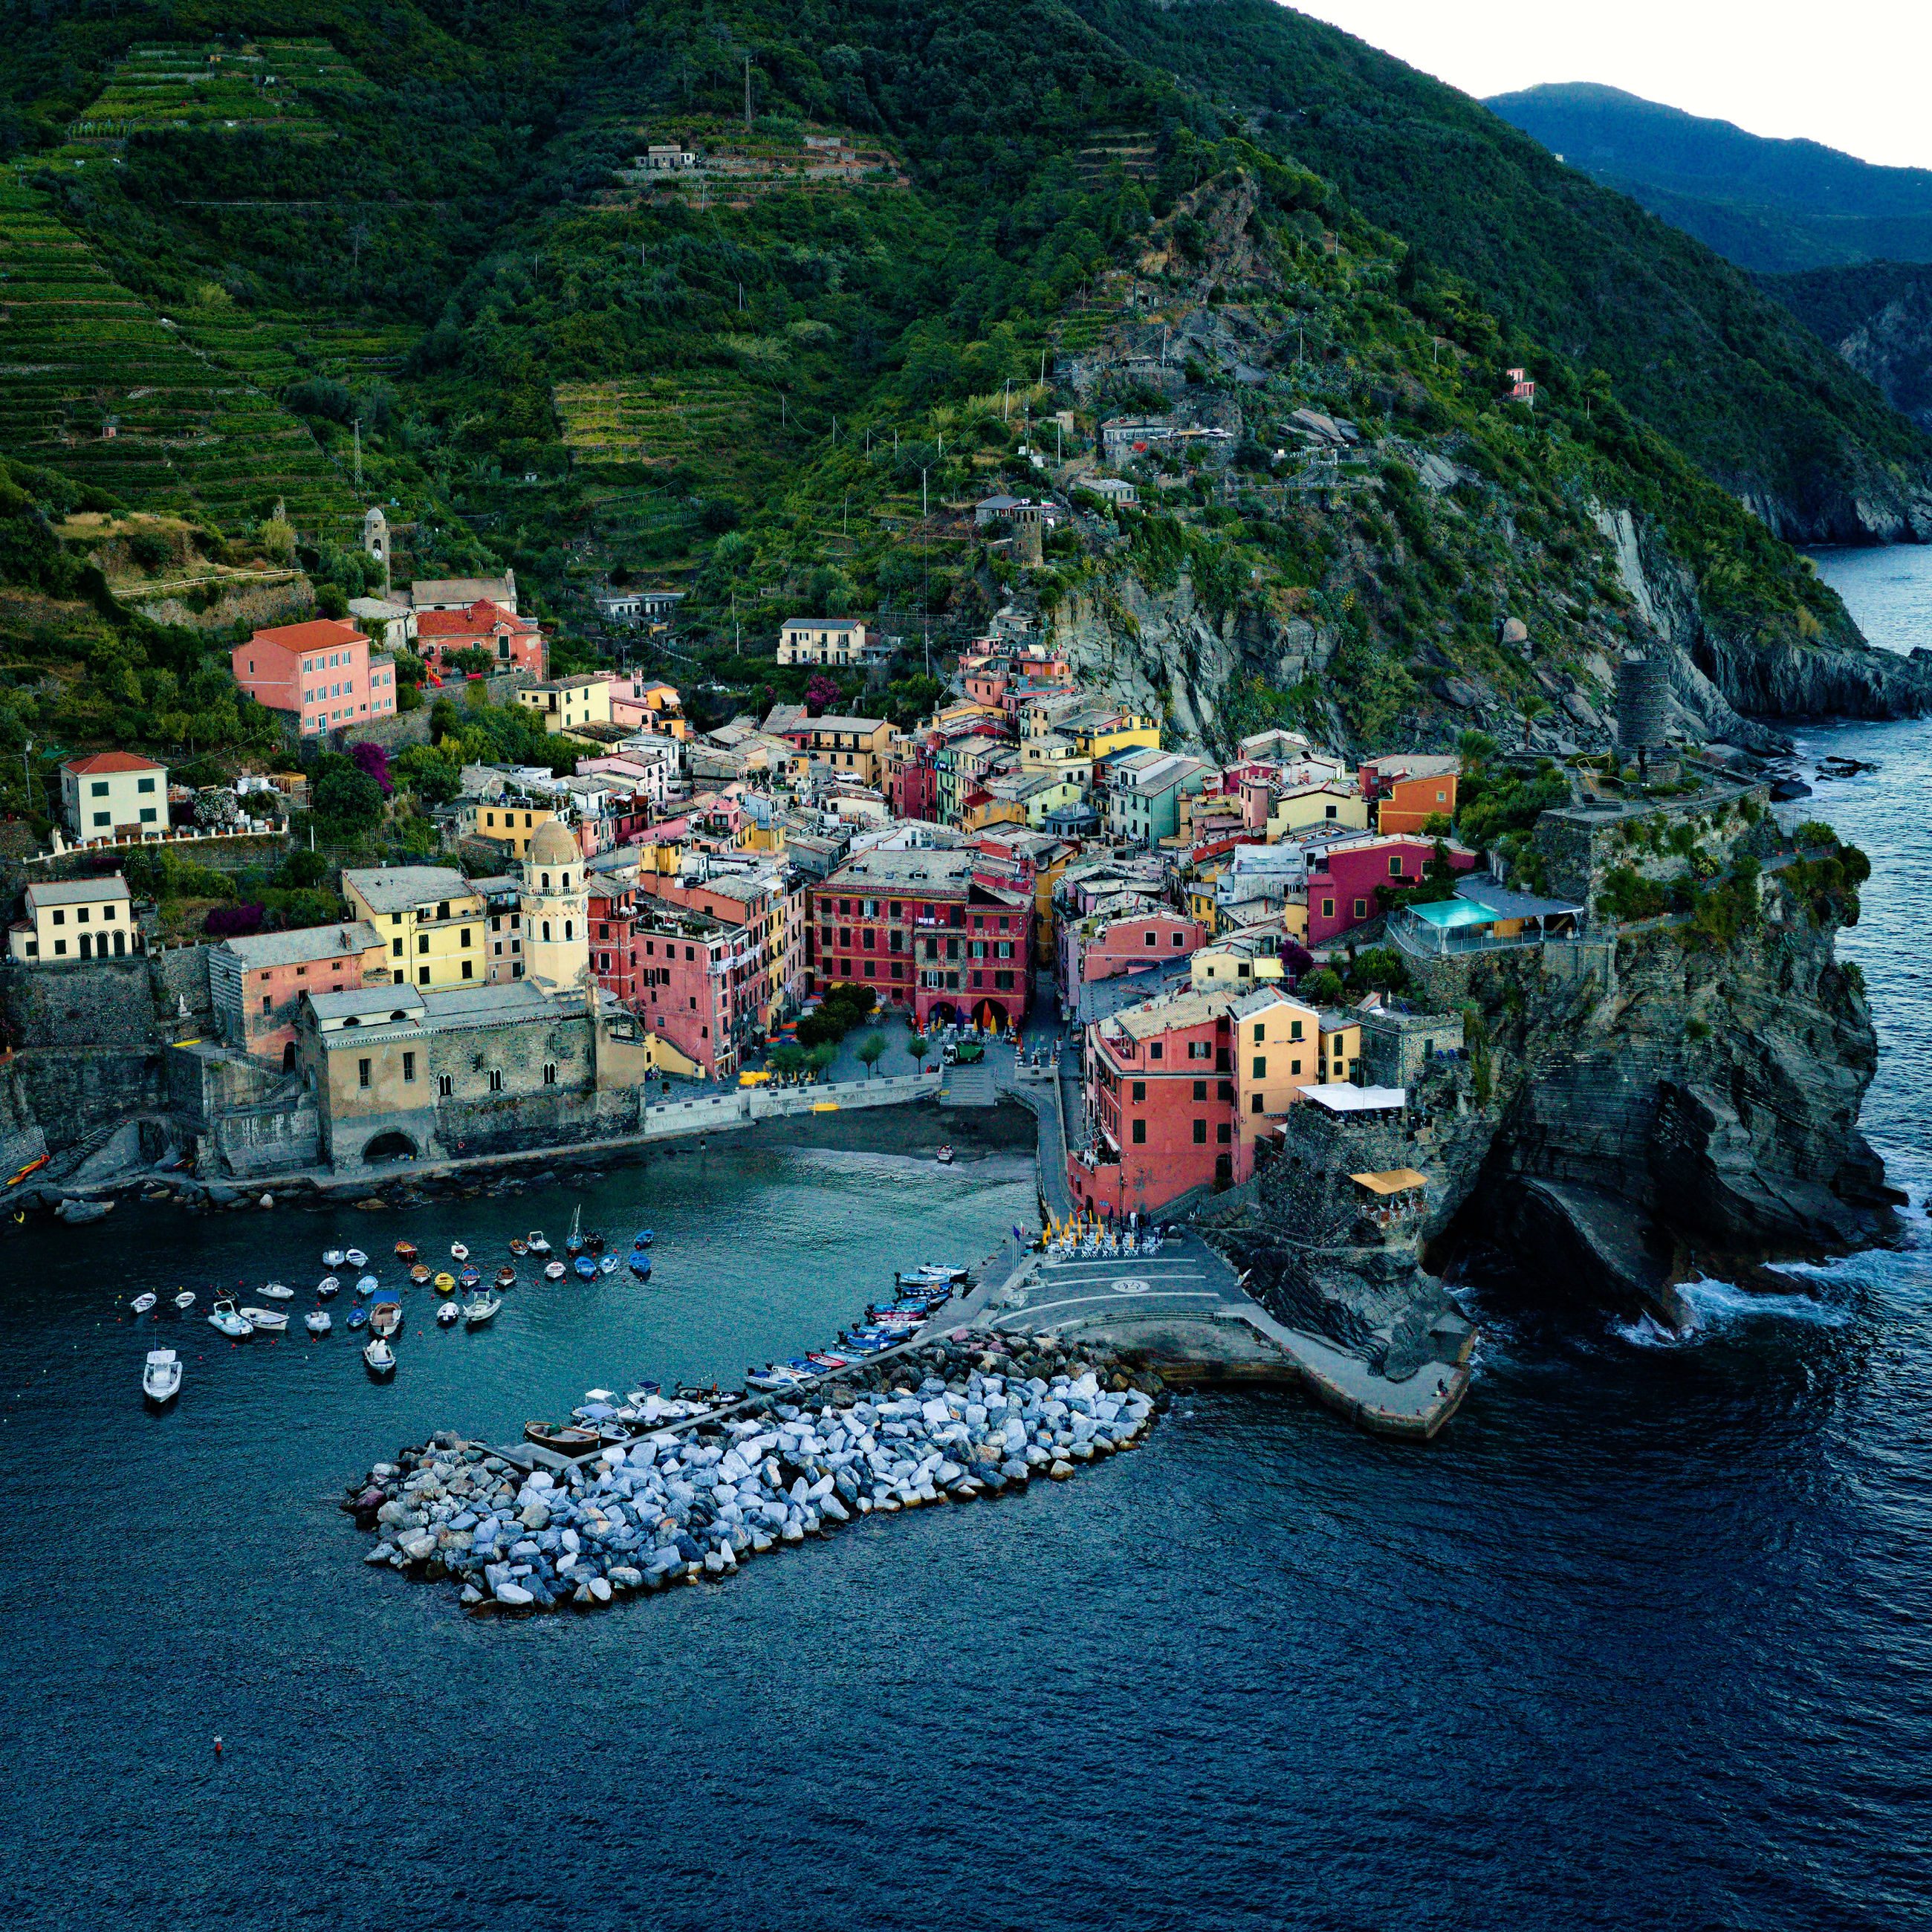 water, architecture, coast, nature, sea, mountain, building exterior, built structure, city, transportation, travel destinations, land, no people, building, bay, nautical vessel, day, travel, high angle view, scenics - nature, outdoors, beauty in nature, beach, harbor, plant, sky, environment, tourism, mode of transportation, coastline, landscape, tree, house